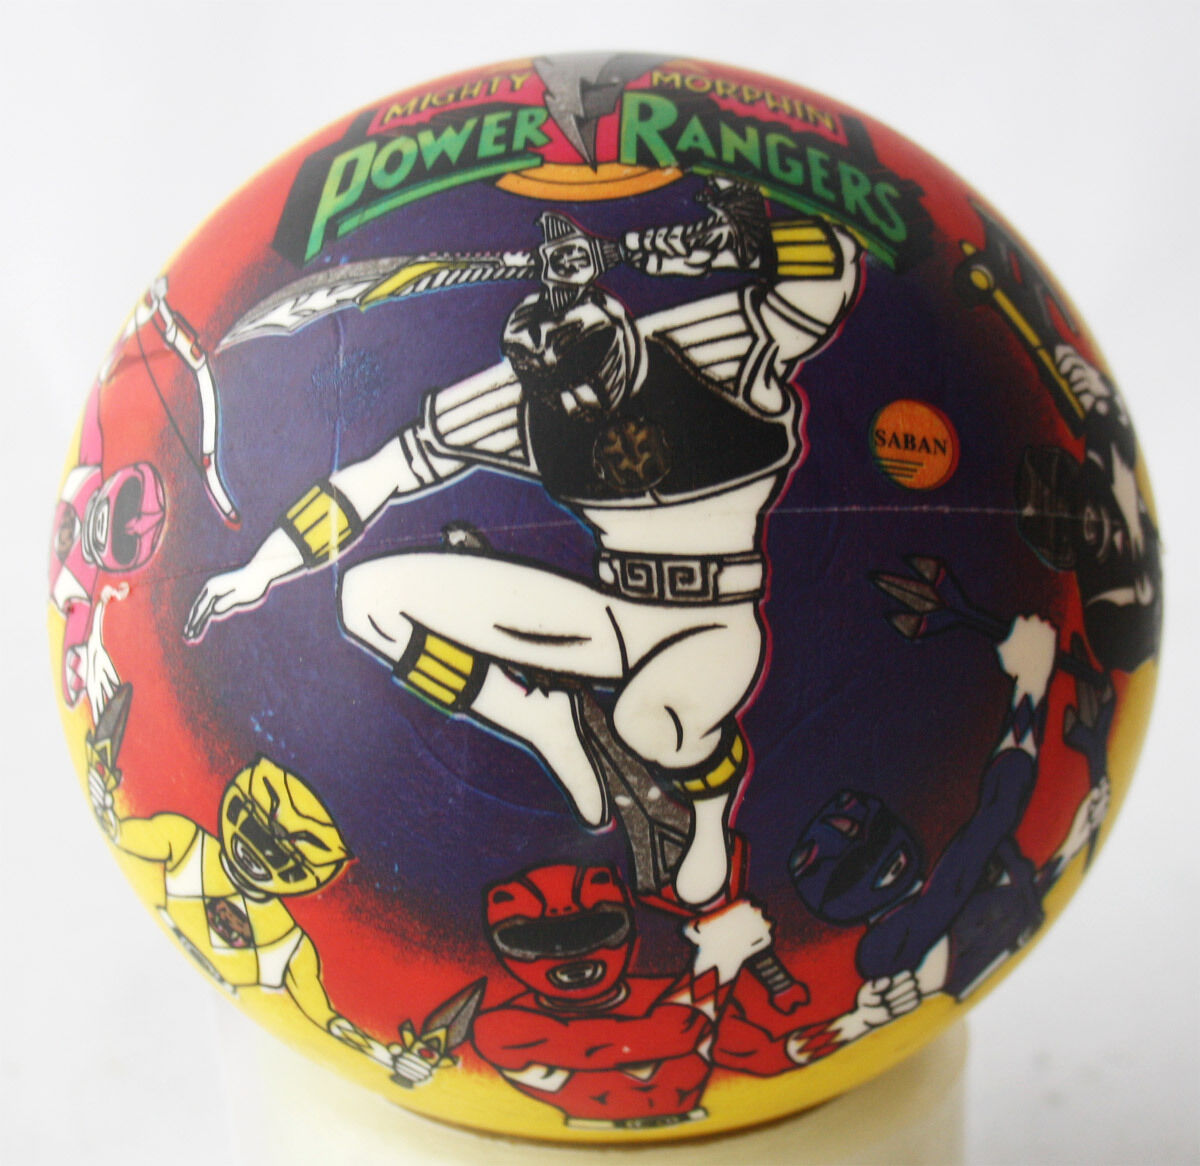 VERY RARE VINTAGE VINTAGE VINTAGE 1994 POWER RANGERS WHITE RANGER RUBBER BALL 22  SMITS NEW NOS 282a4f